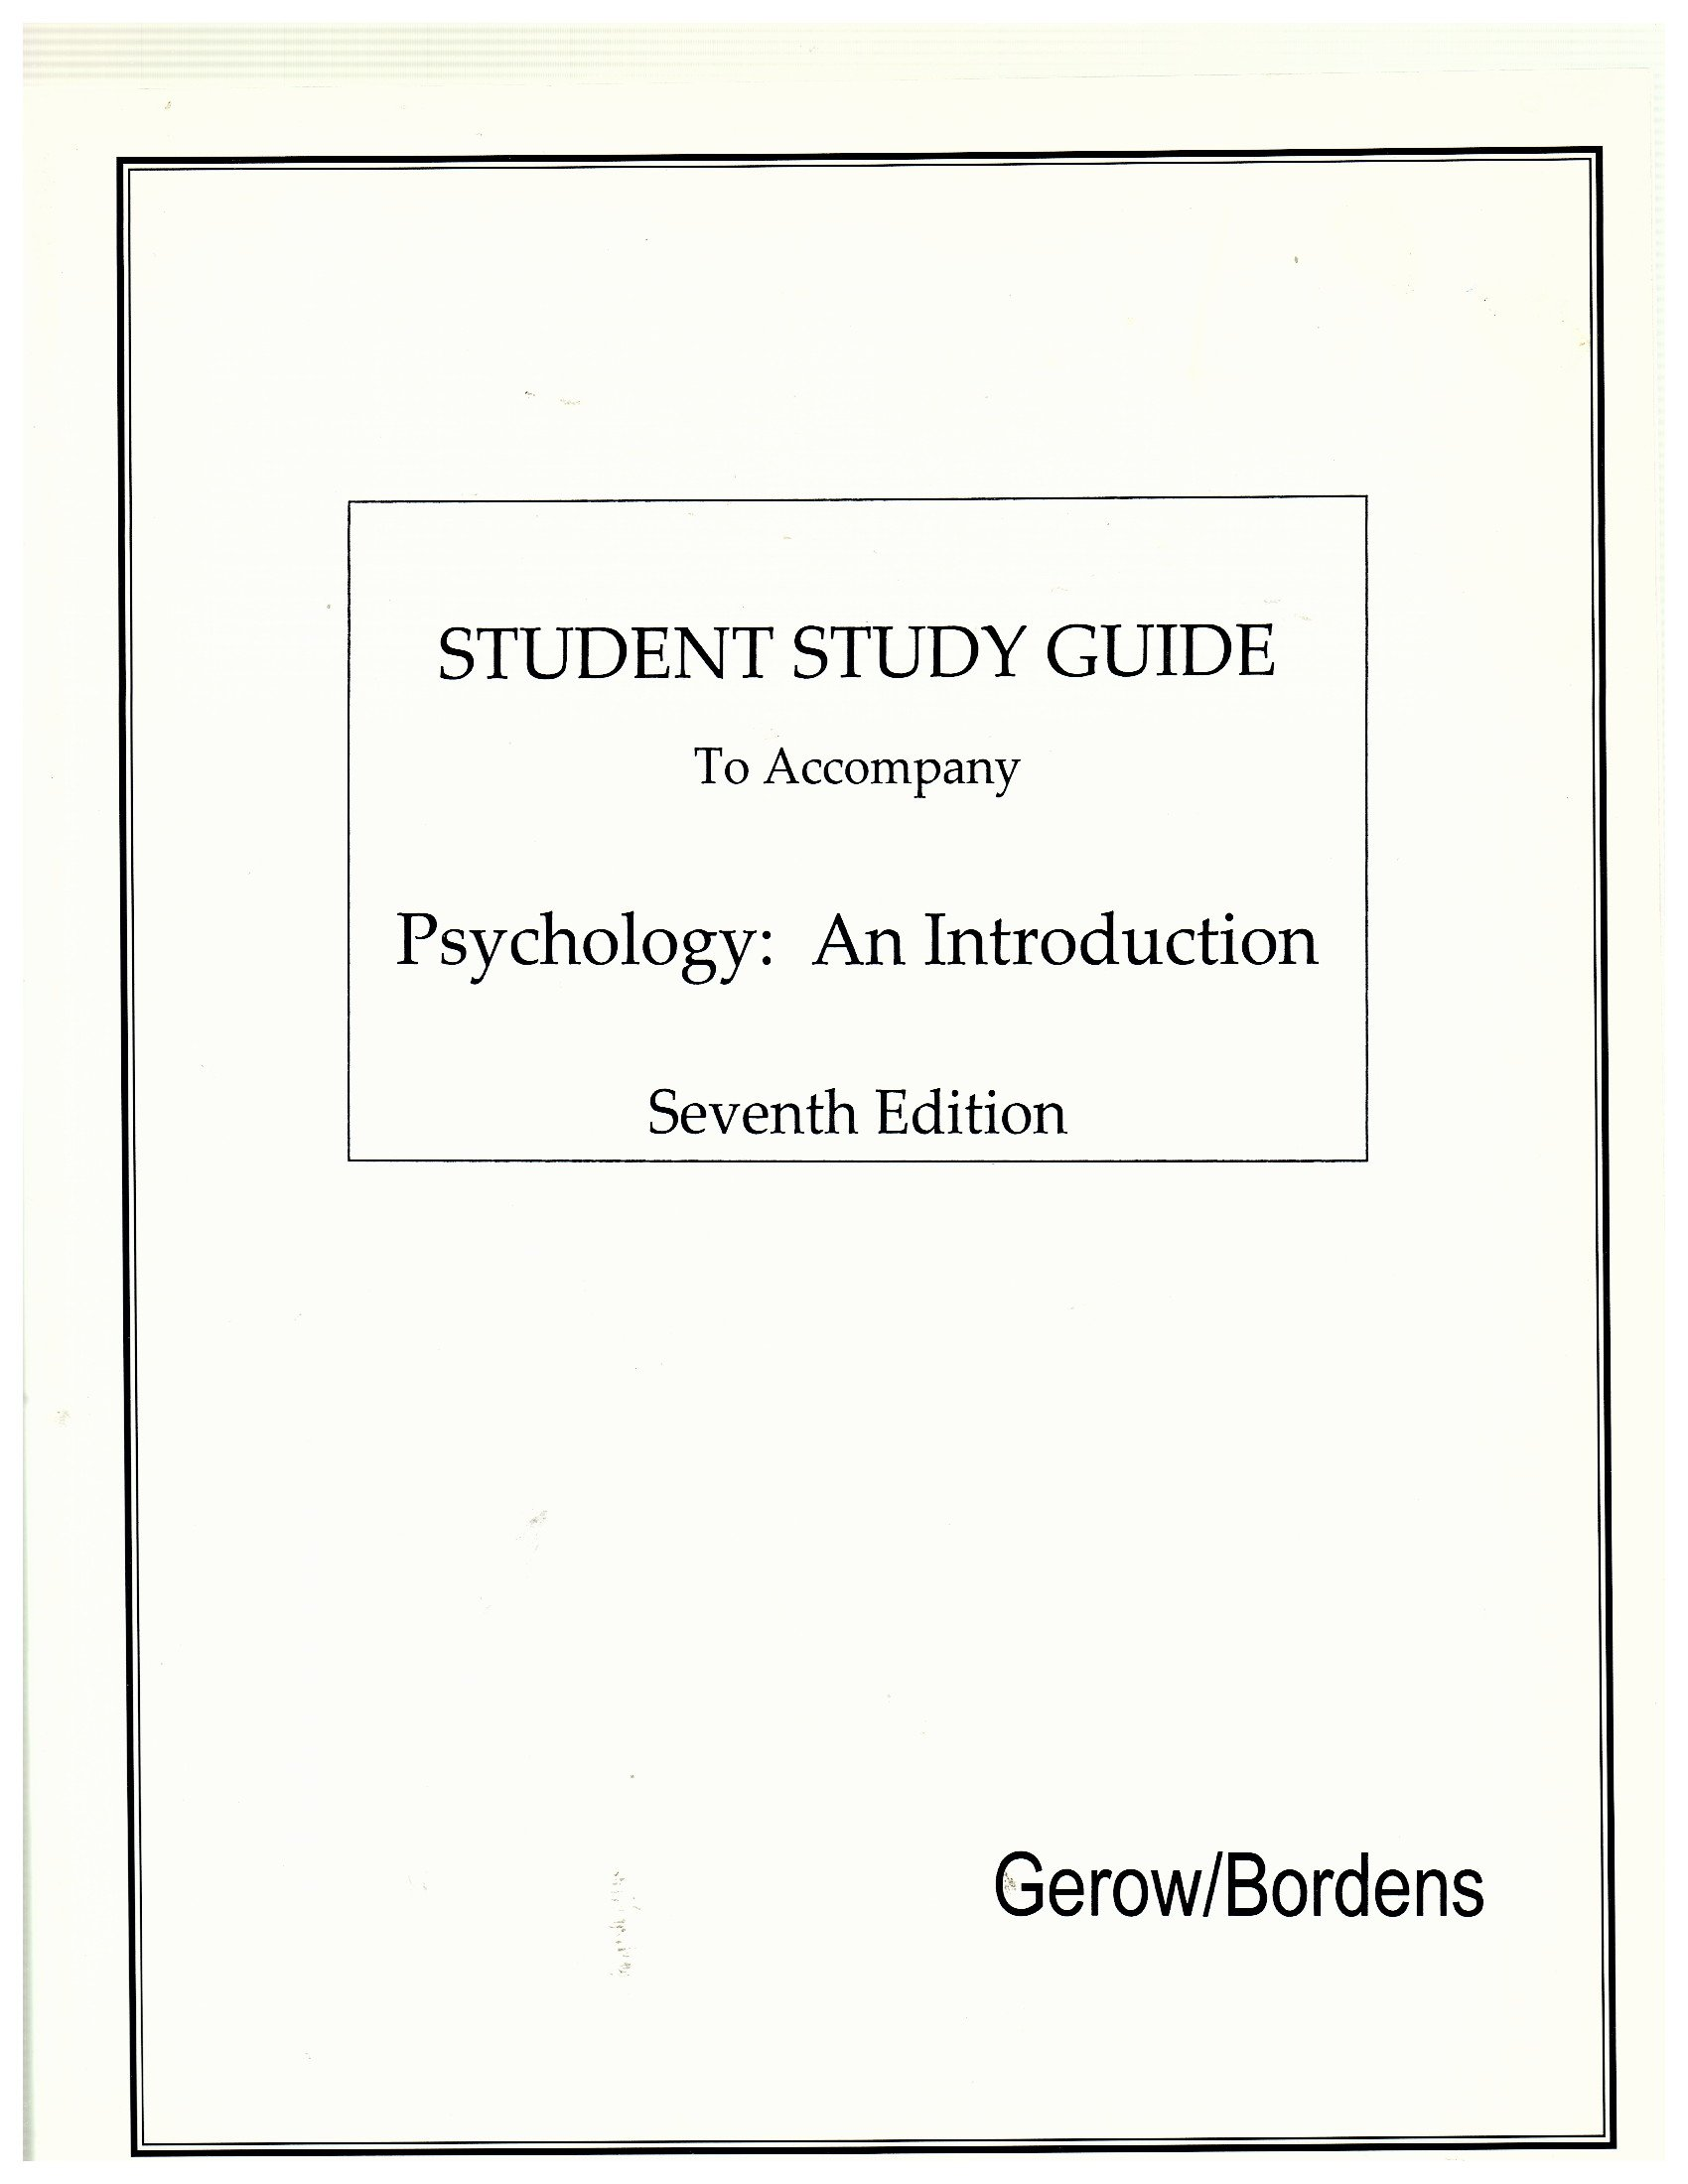 Student Study Guide to Accompany Psychology: An Introduction:  Gerow/Bordens: 9781583161333: Amazon.com: Books